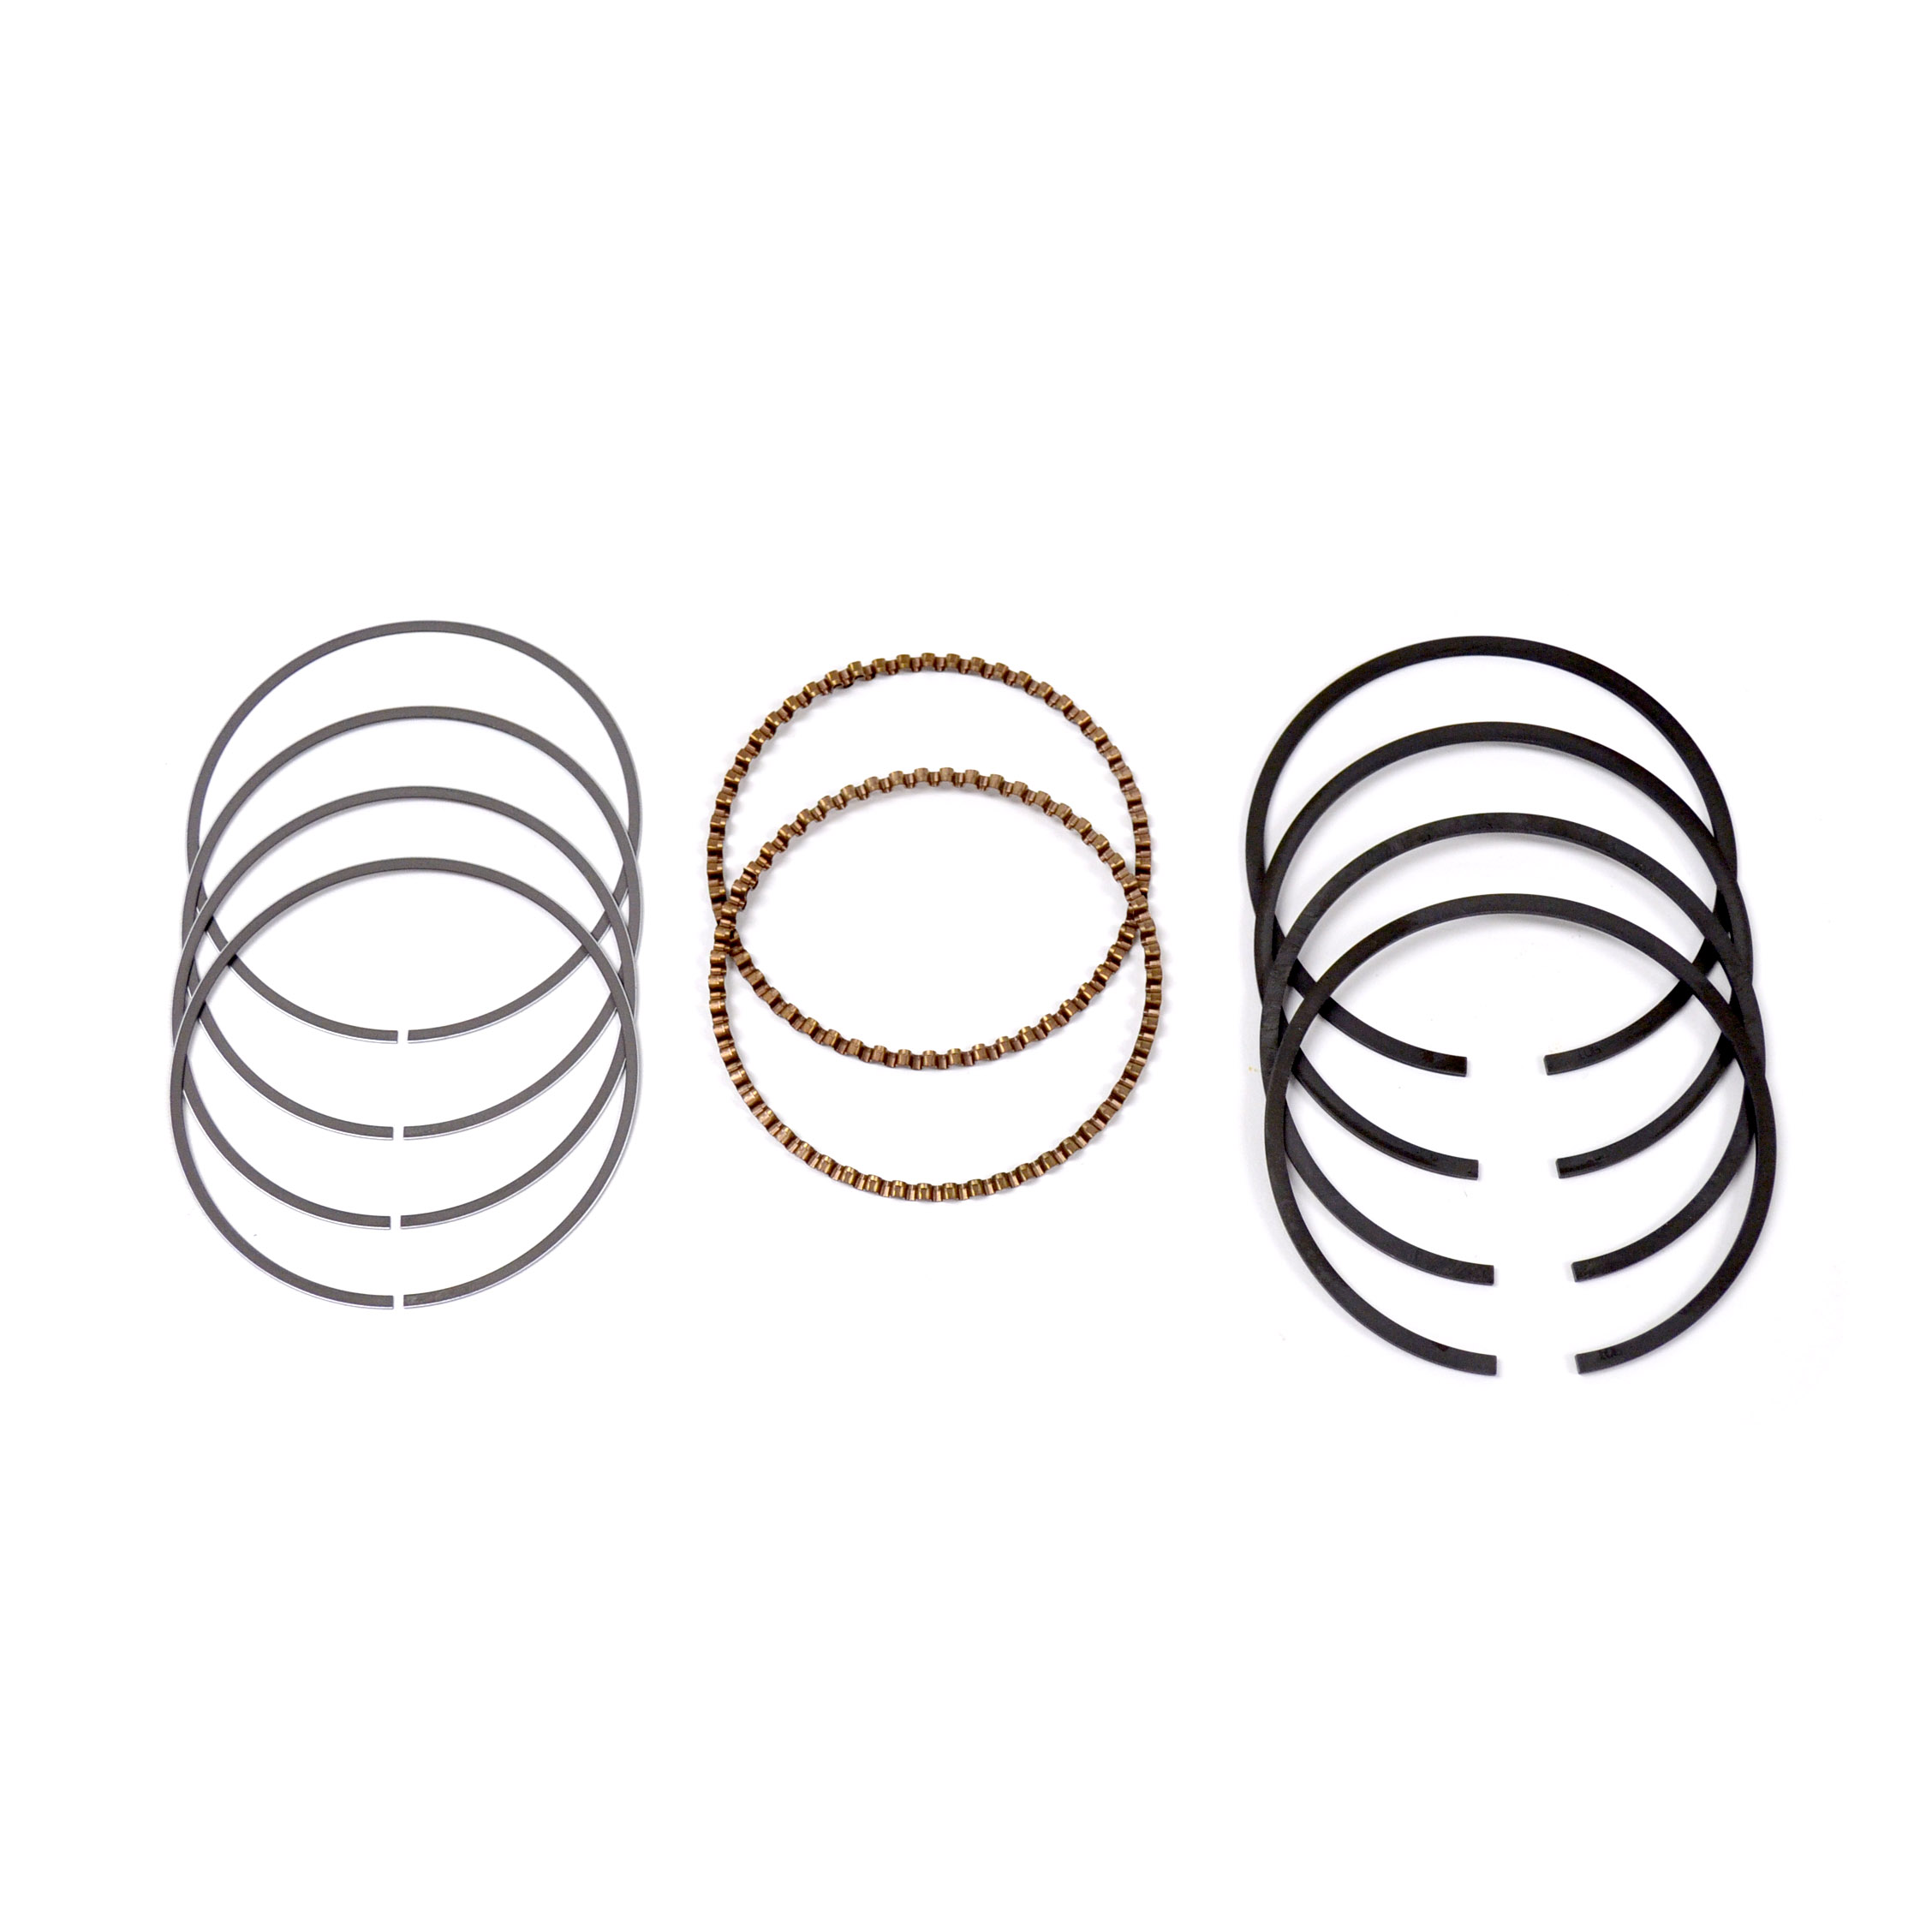 Norton Commando 750 Piston Ring Set